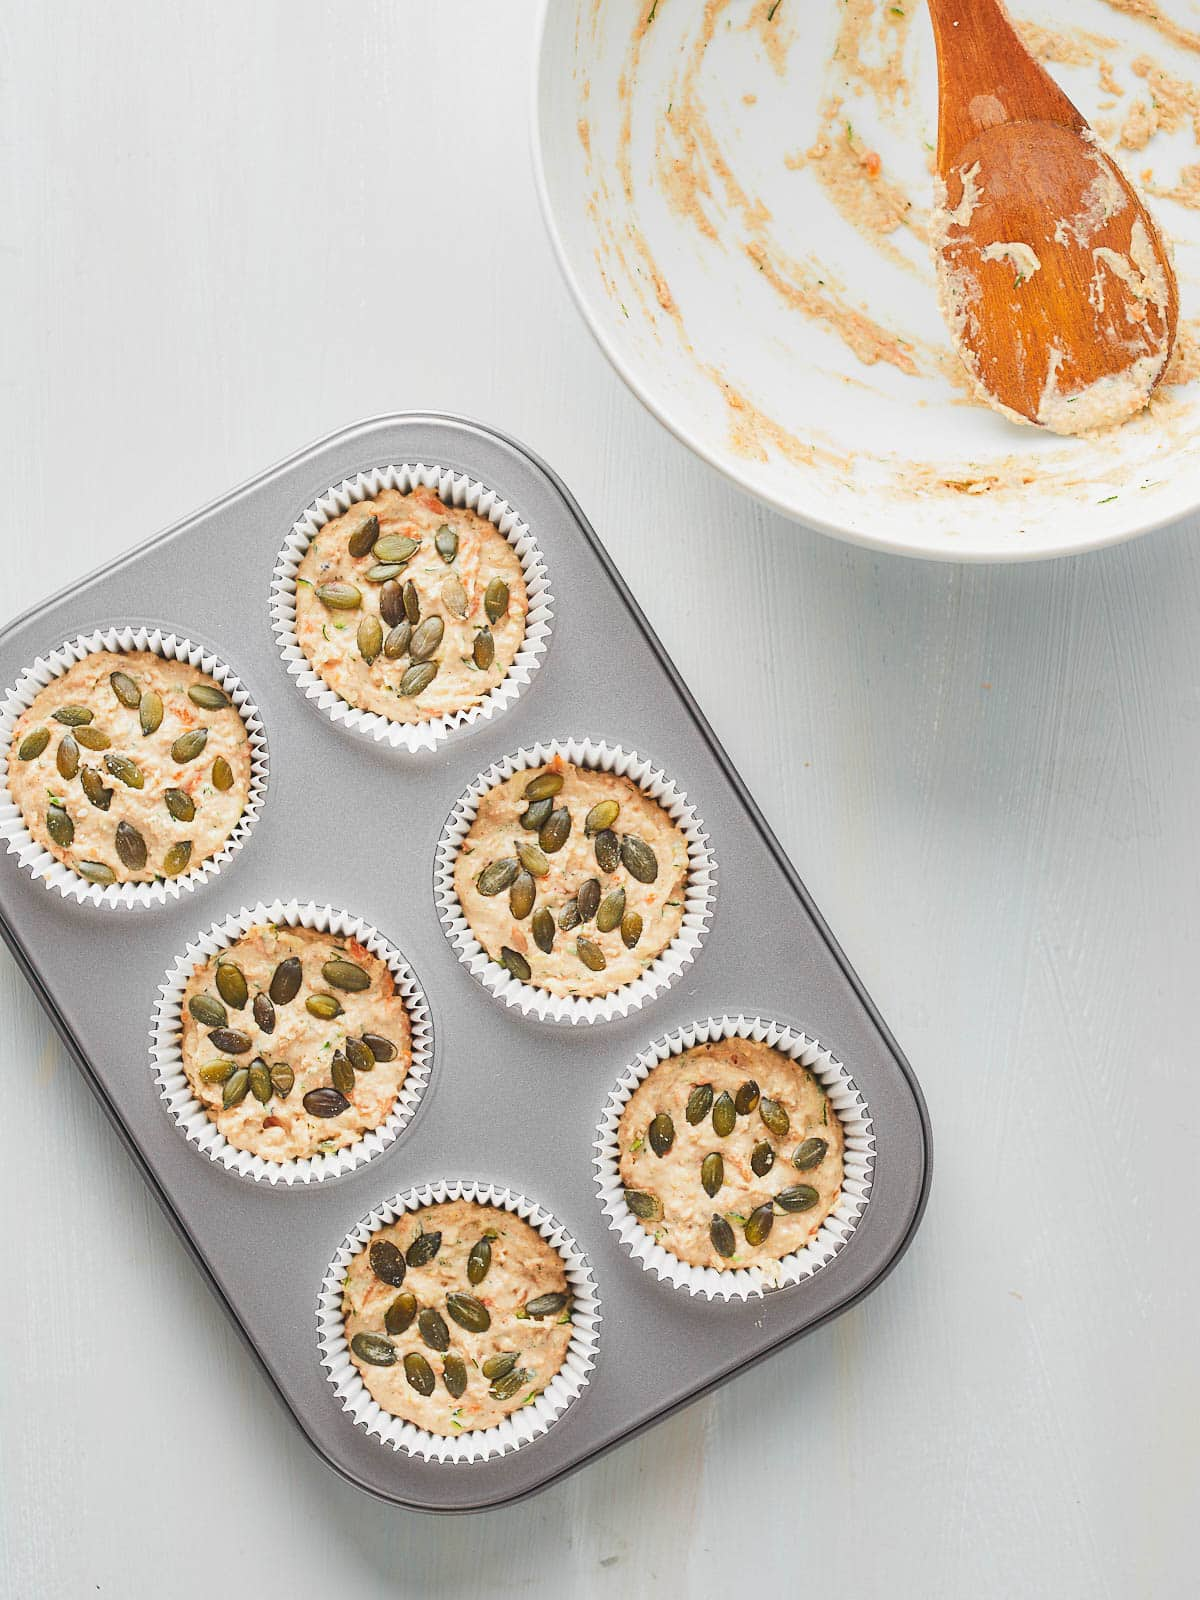 Topping the muffins with pumpkin seeds